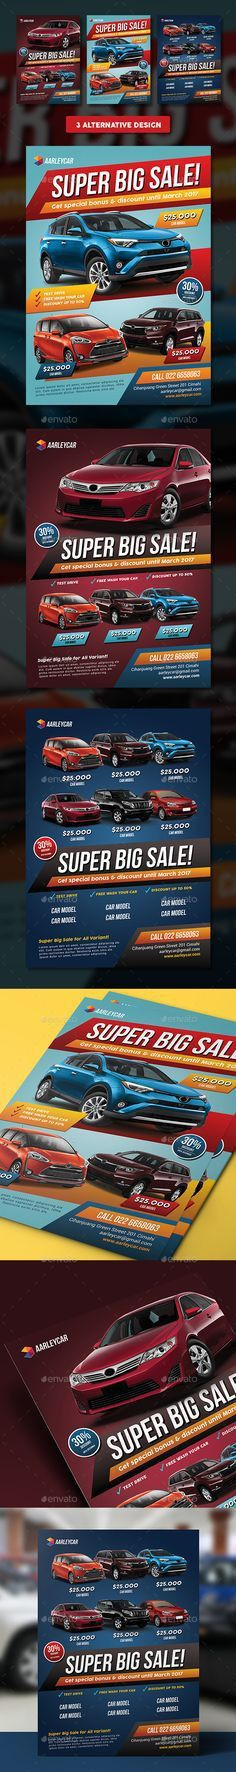 Car Sale Show Flyer | Flyer template, Cars and Brochures